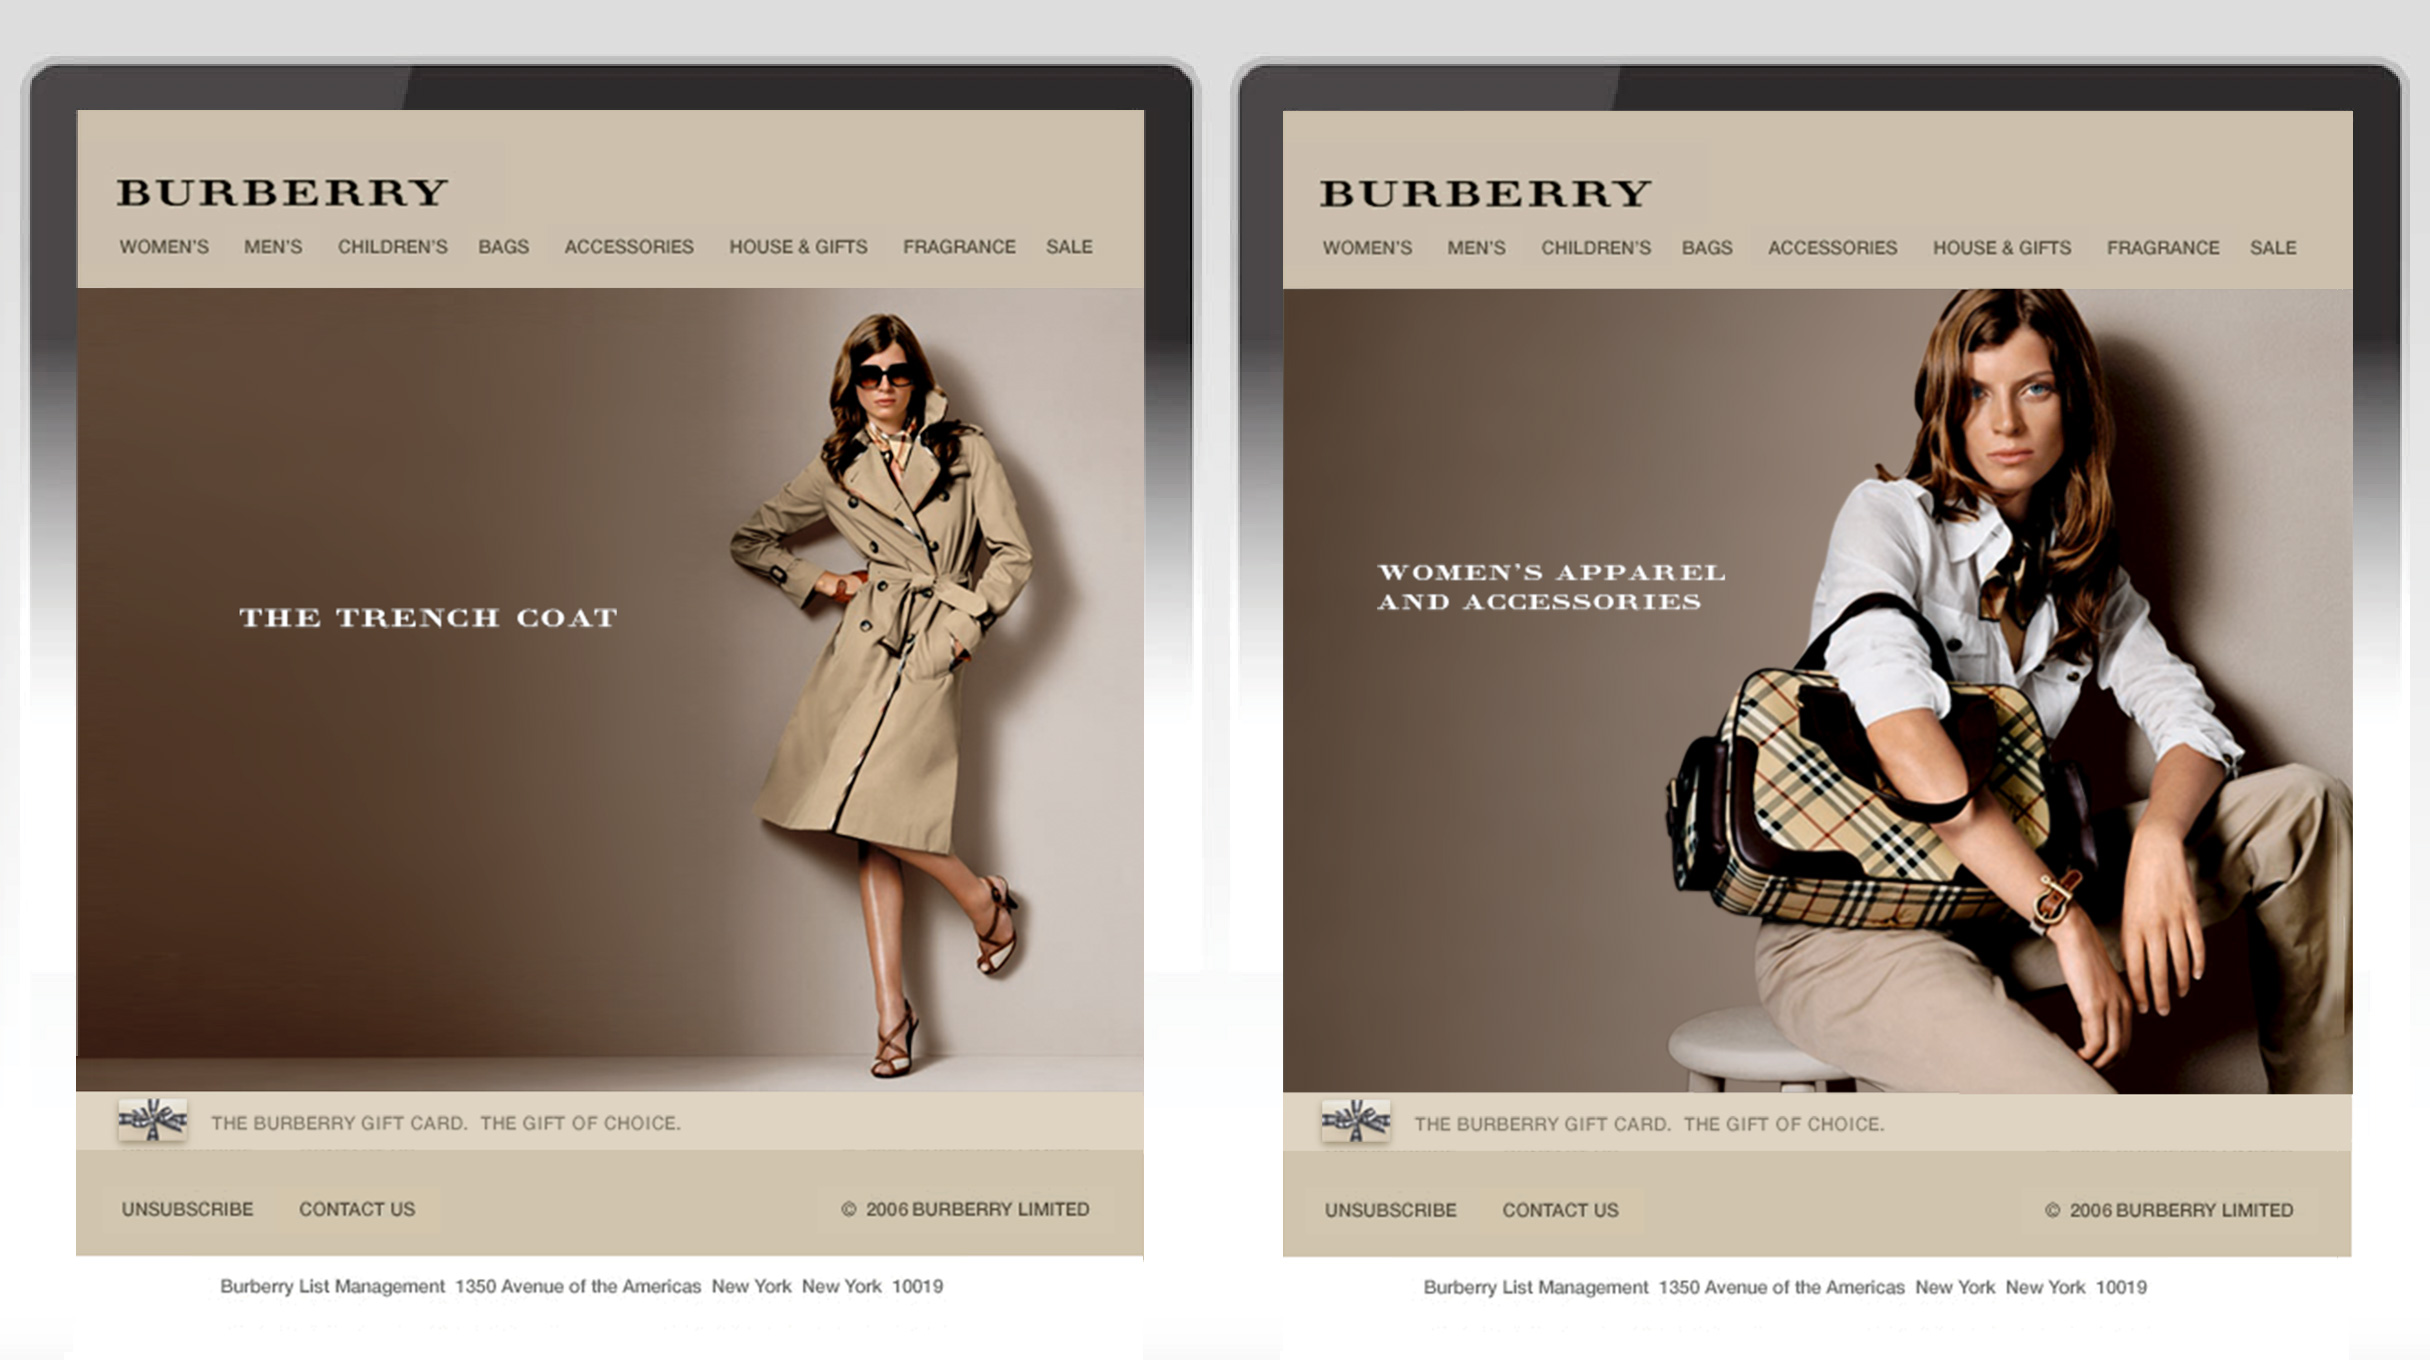 Burberry email model imagery